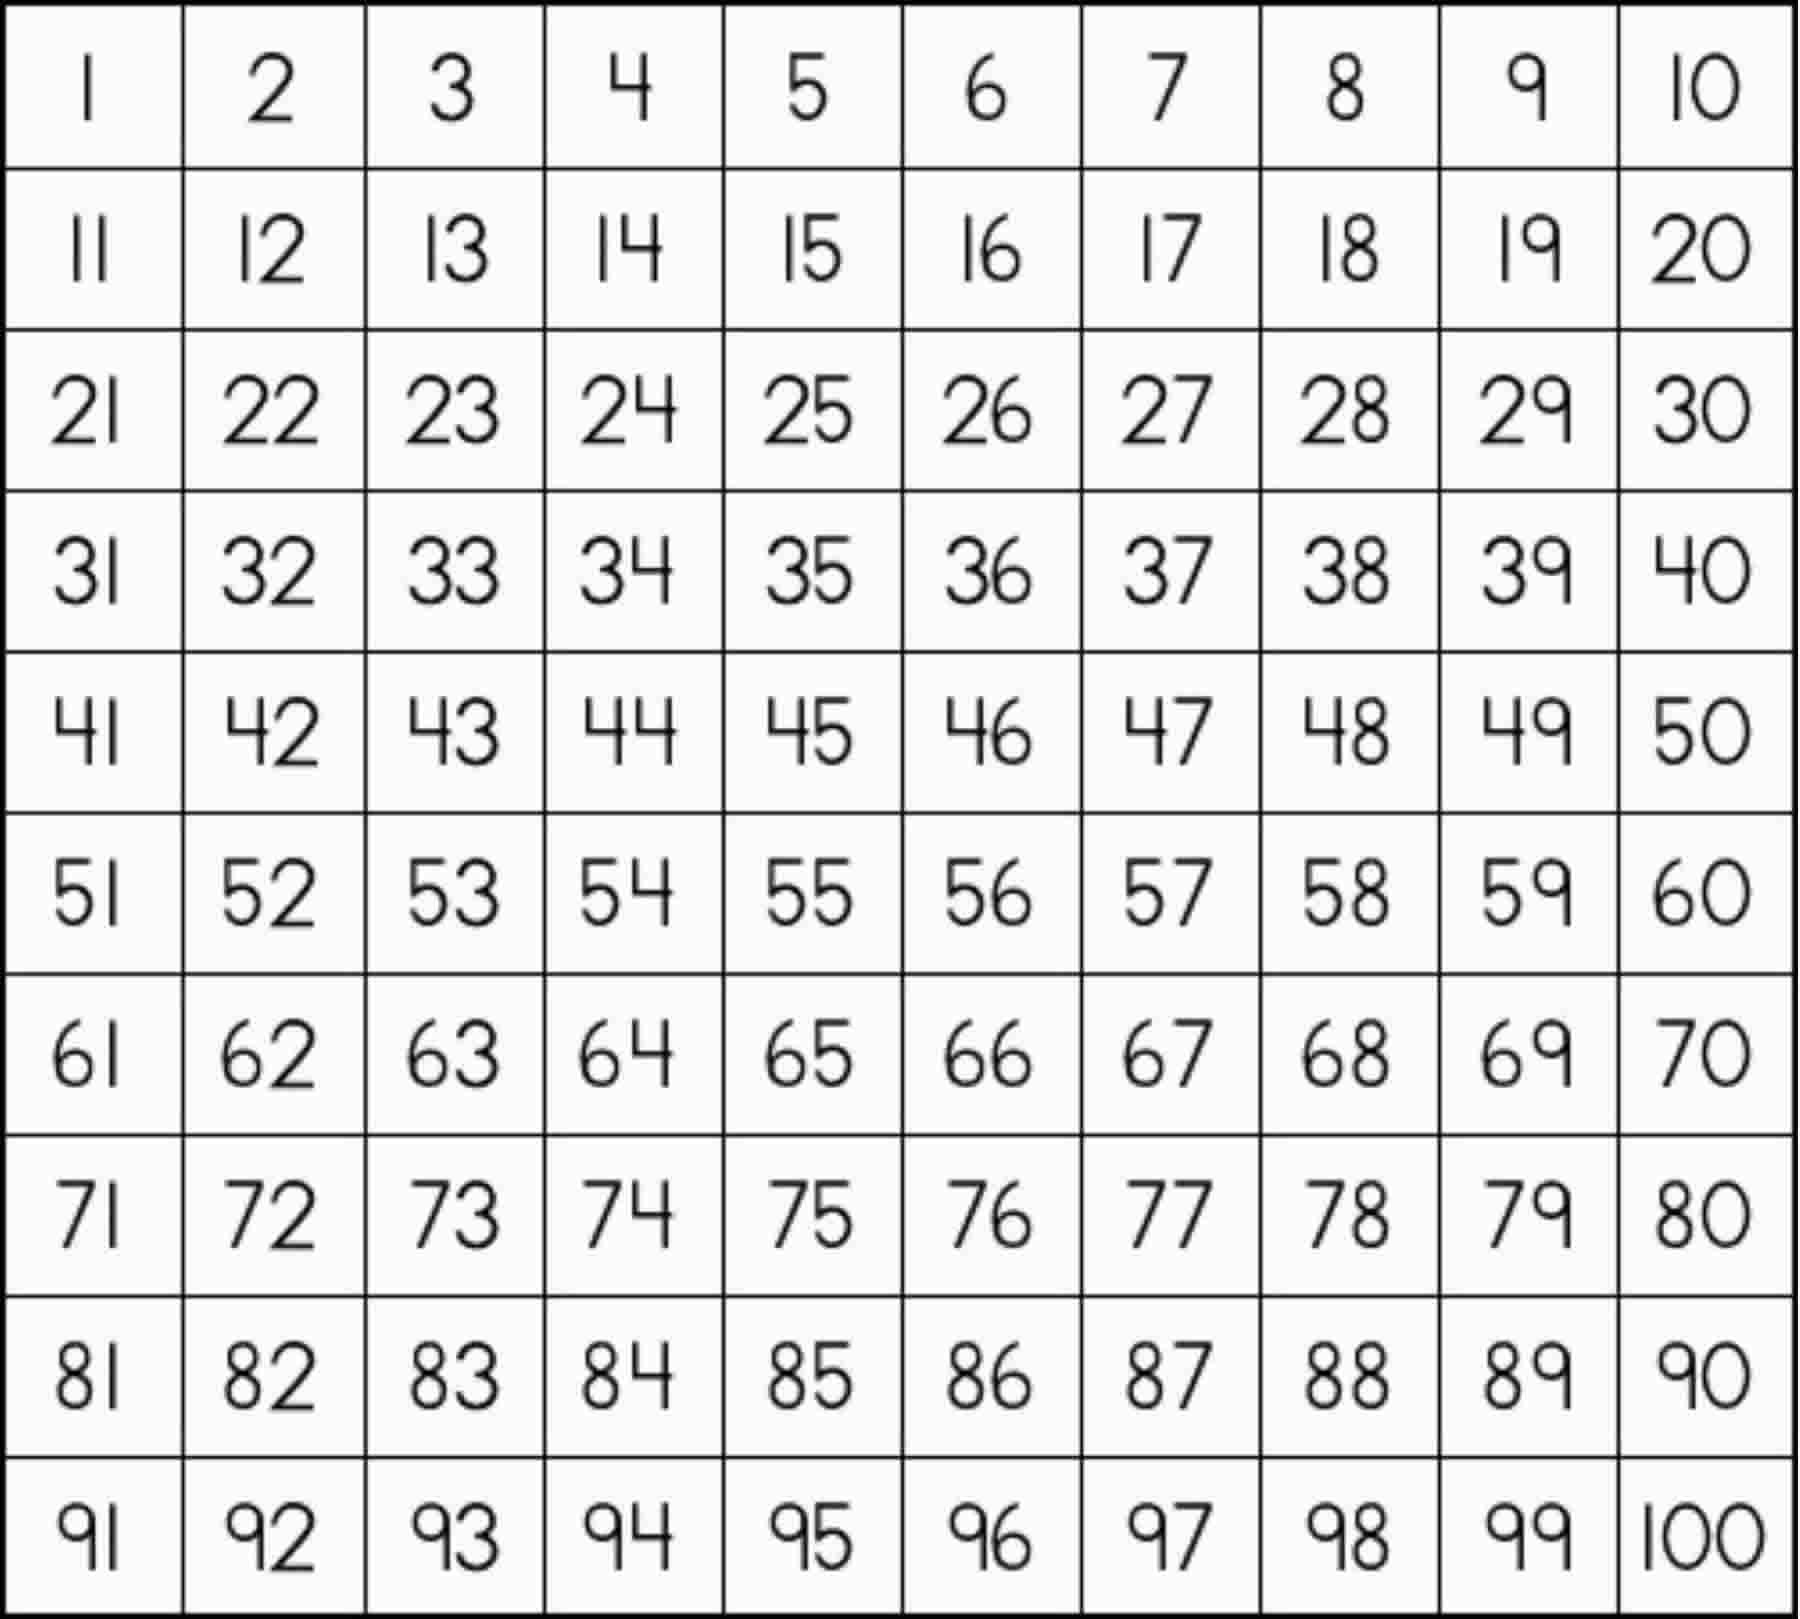 image relating to Printable Numbers 1 100 called Selection Sheet 1-100 towards Print Sport Shelter